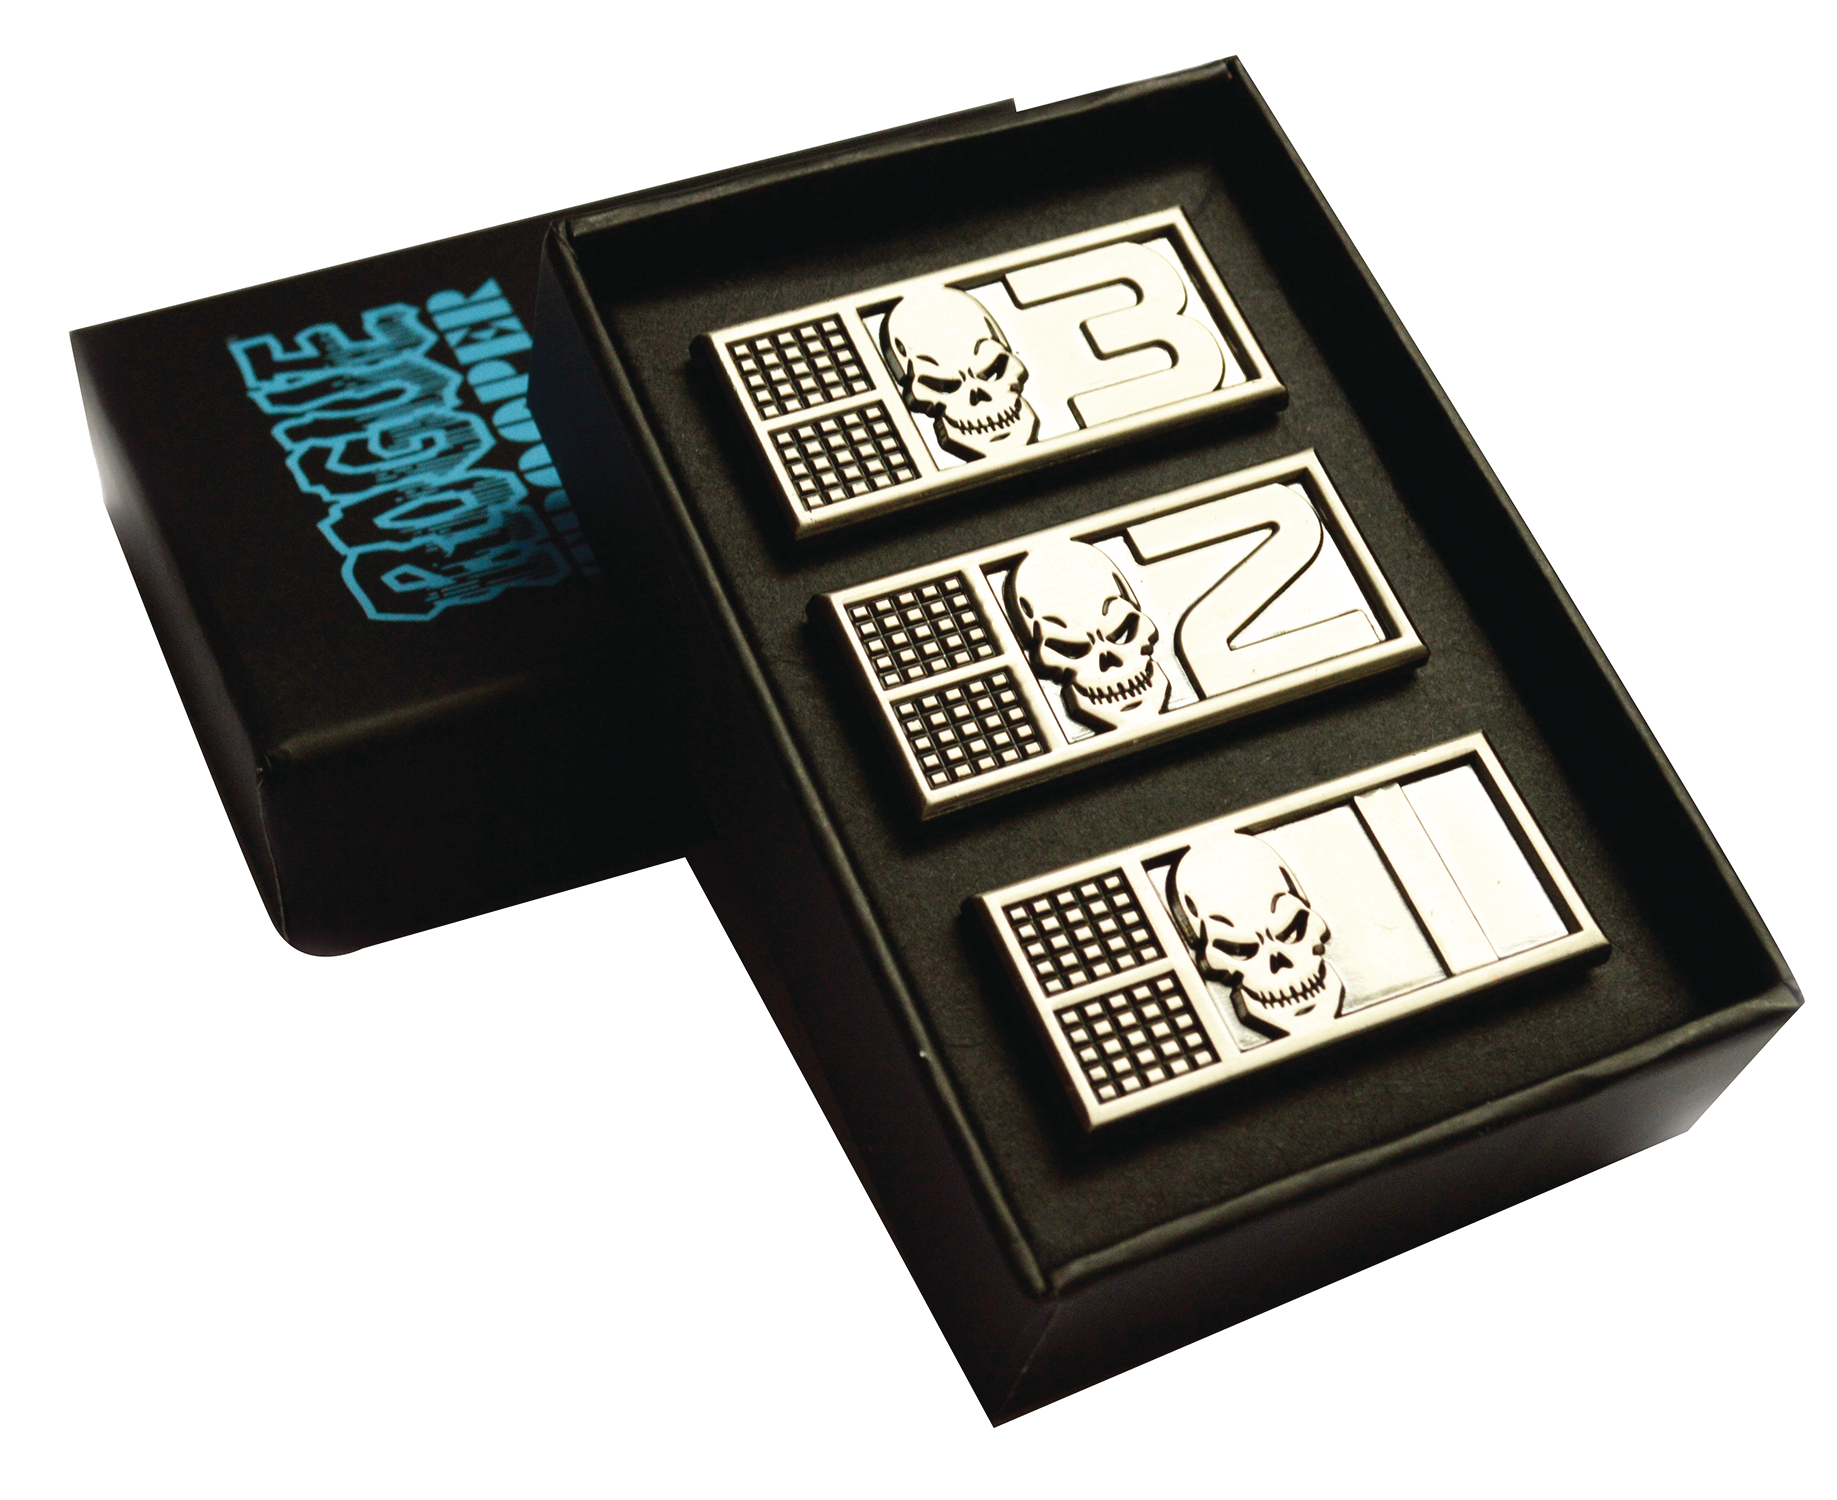 ROGUE TROOPER BIOCHIP METAL PIN BADGE SET